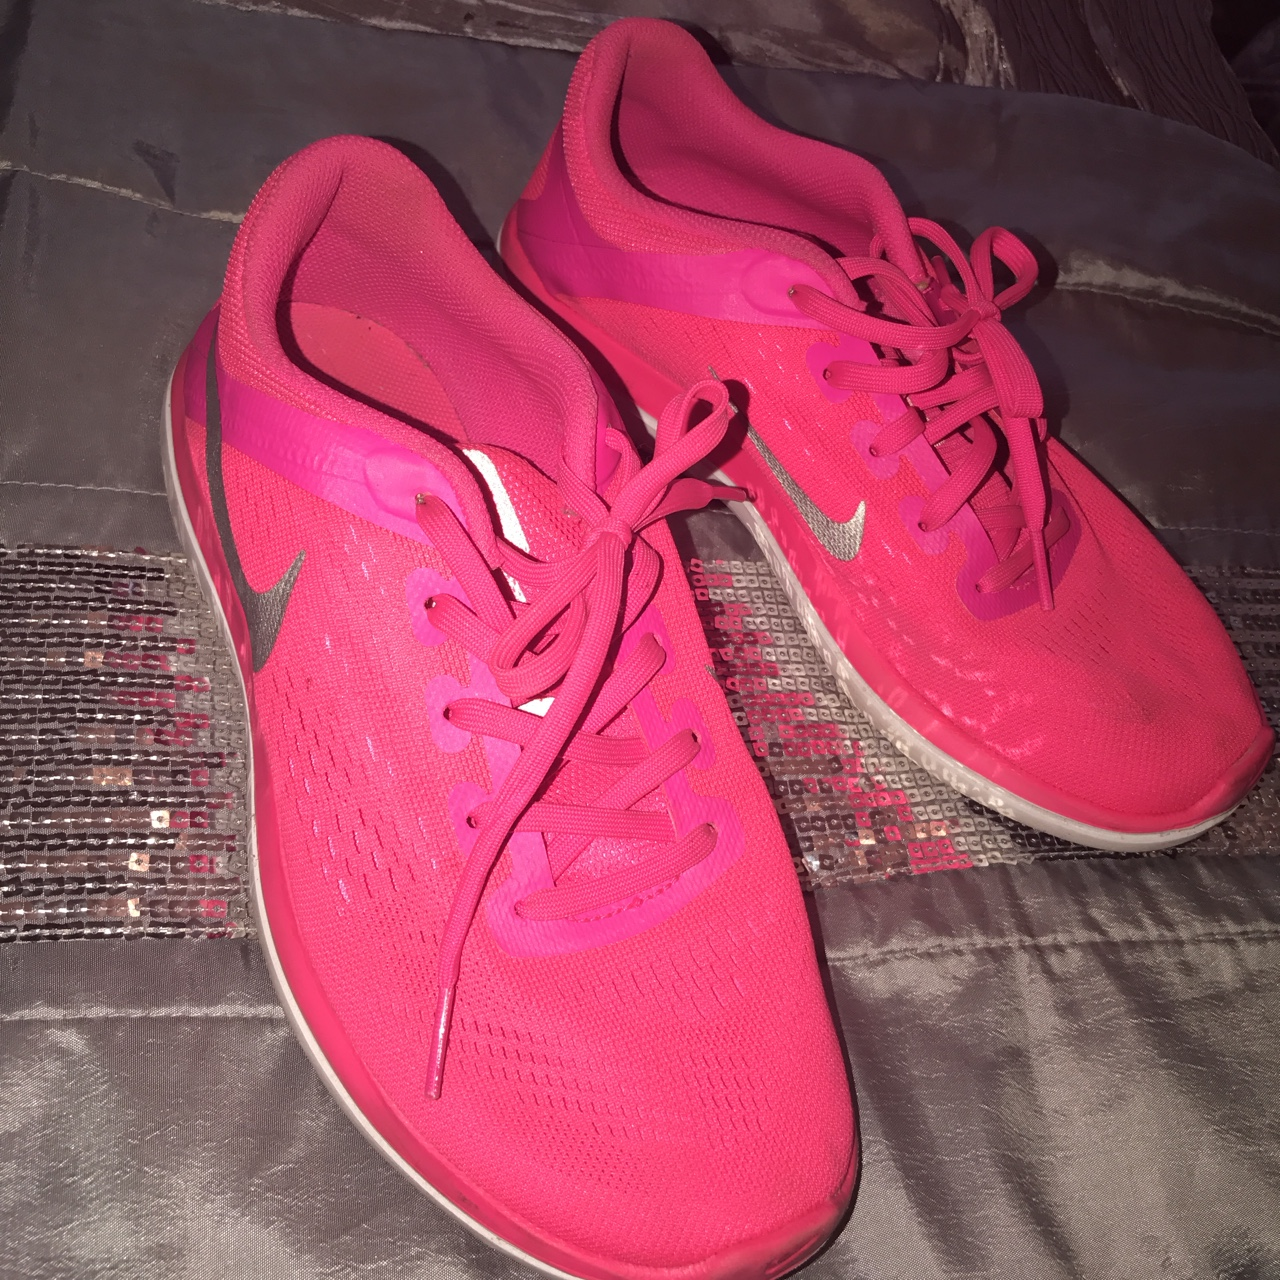 Bright pink Nike flex trainers, only